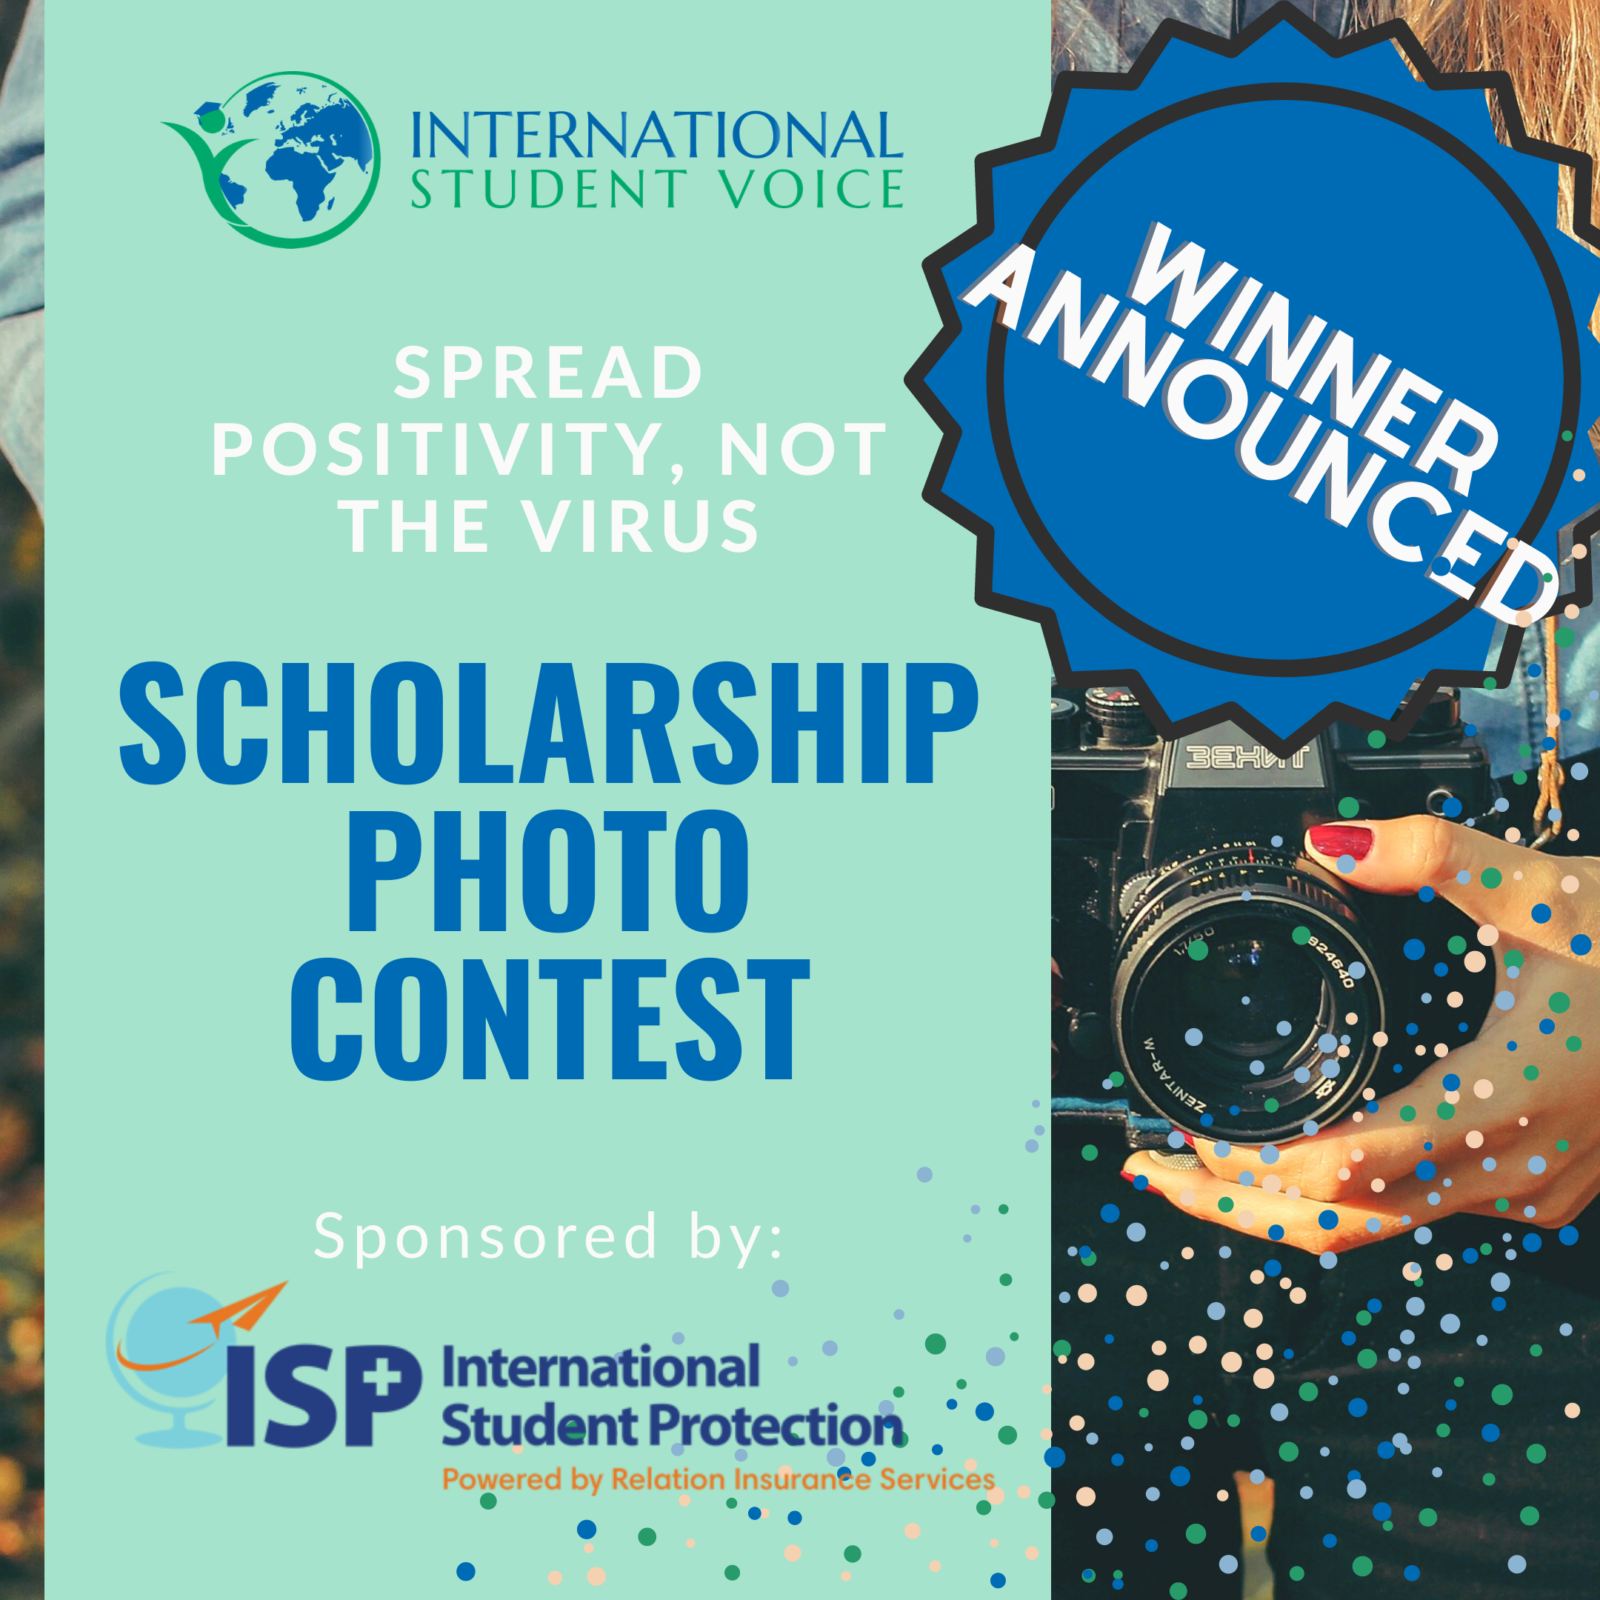 international student voice scholarship photo contest